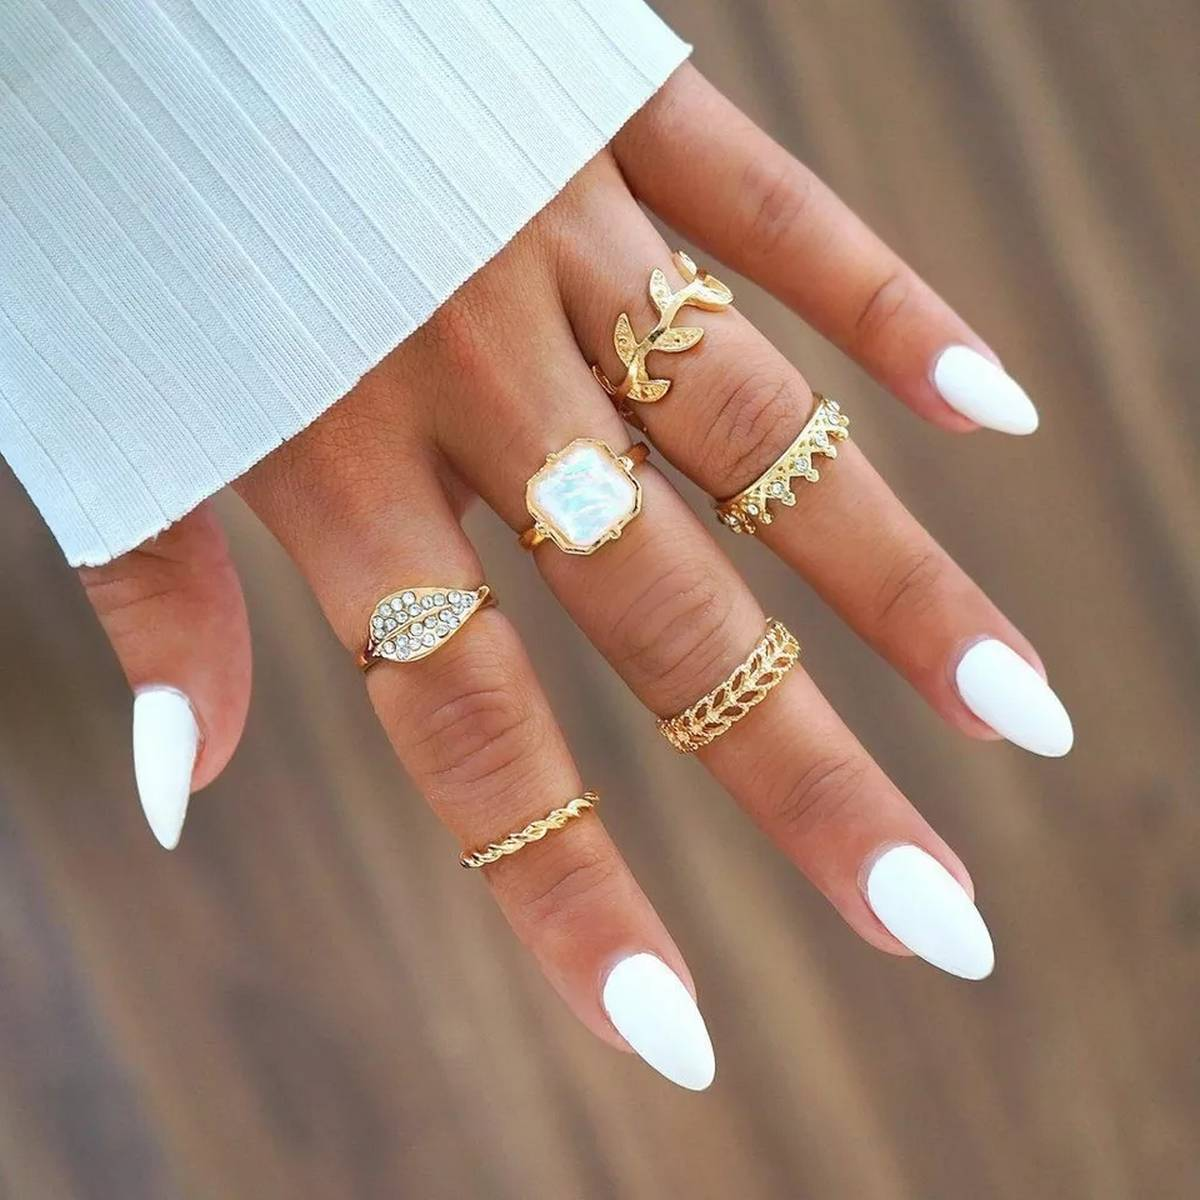 6 Pieces Rings/Set Hot Personality For Girls & Woman